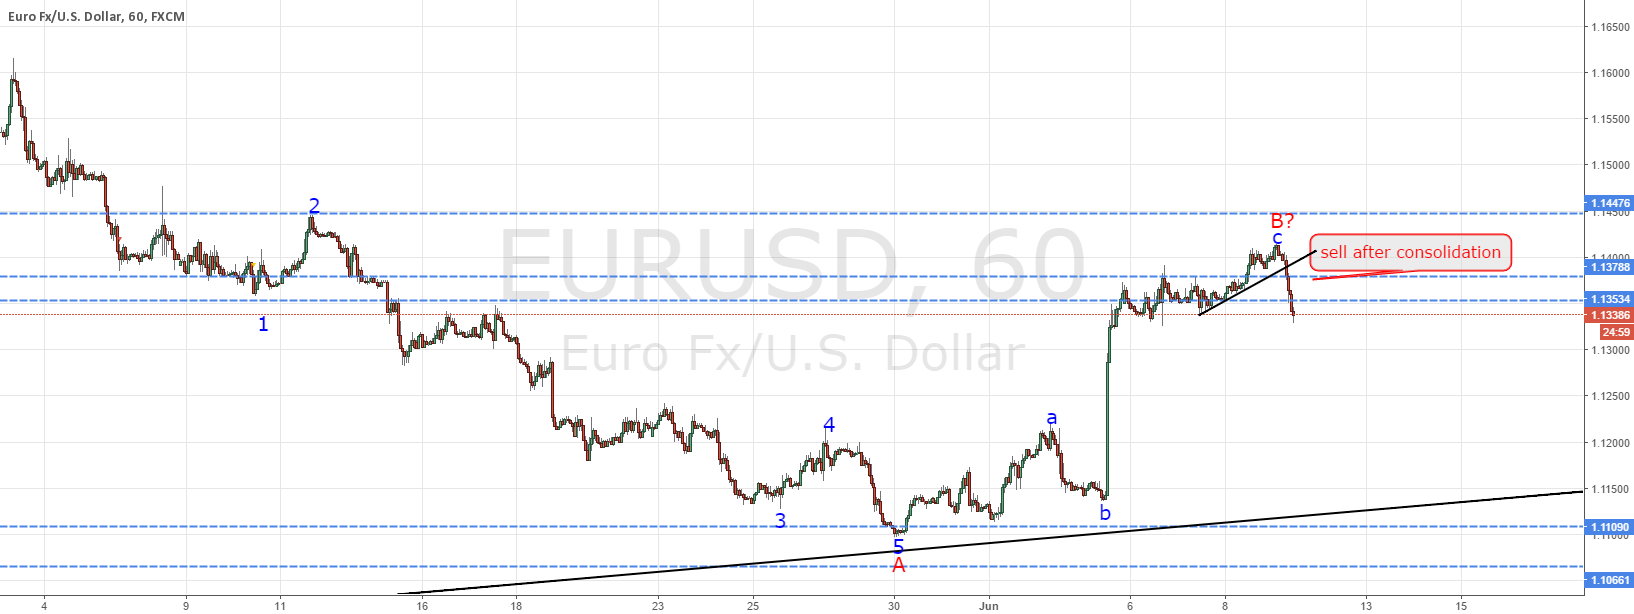 EURUSD according to plan, follow up